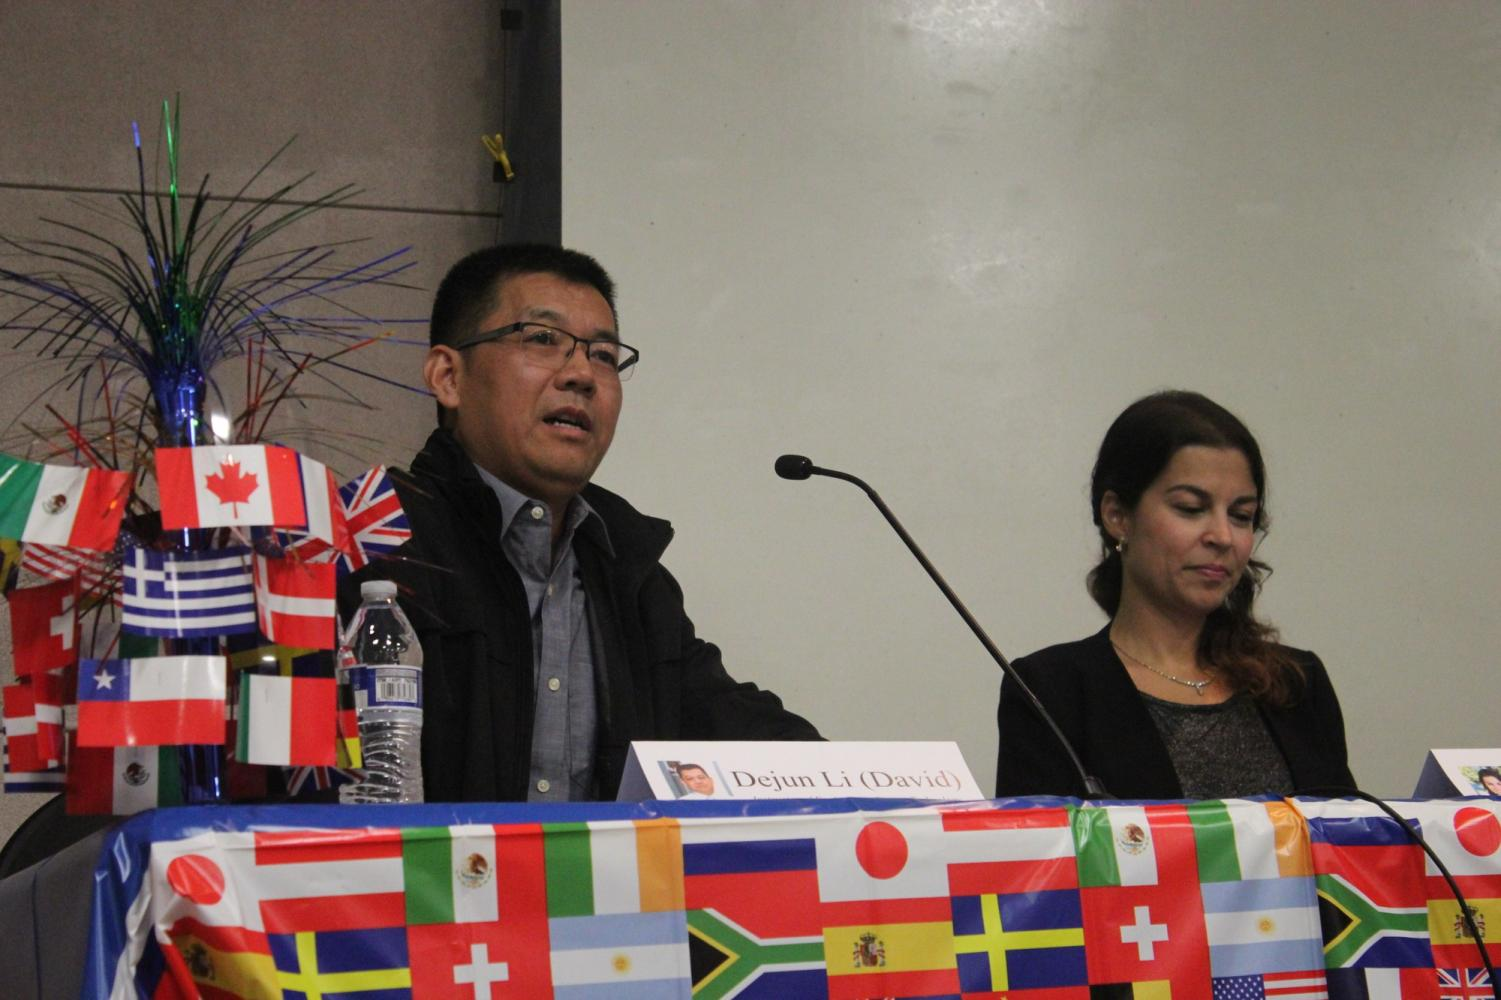 Dejun (David) Li, engineering design technology instructor, and Paula Pereira, instructor and librarian, answer student questions in a panel. Educators share their experiences as international students that led them to their careers. Photo credit: Carlos Martinez